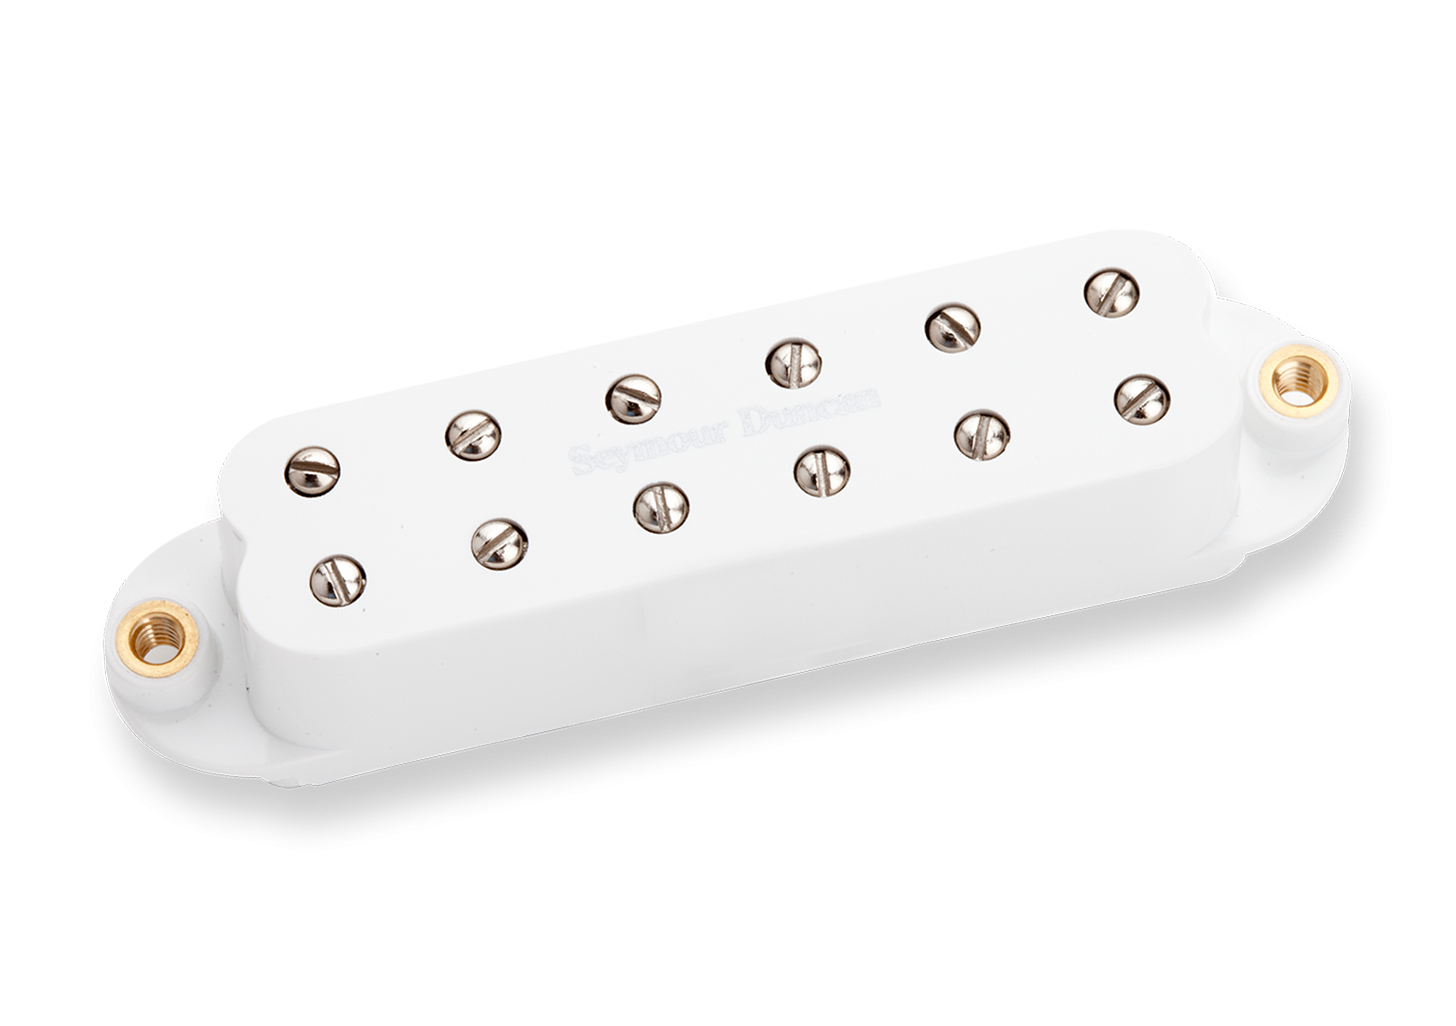 Seymour Duncan JB Jr. Strat SJBJ-1B Bridge White